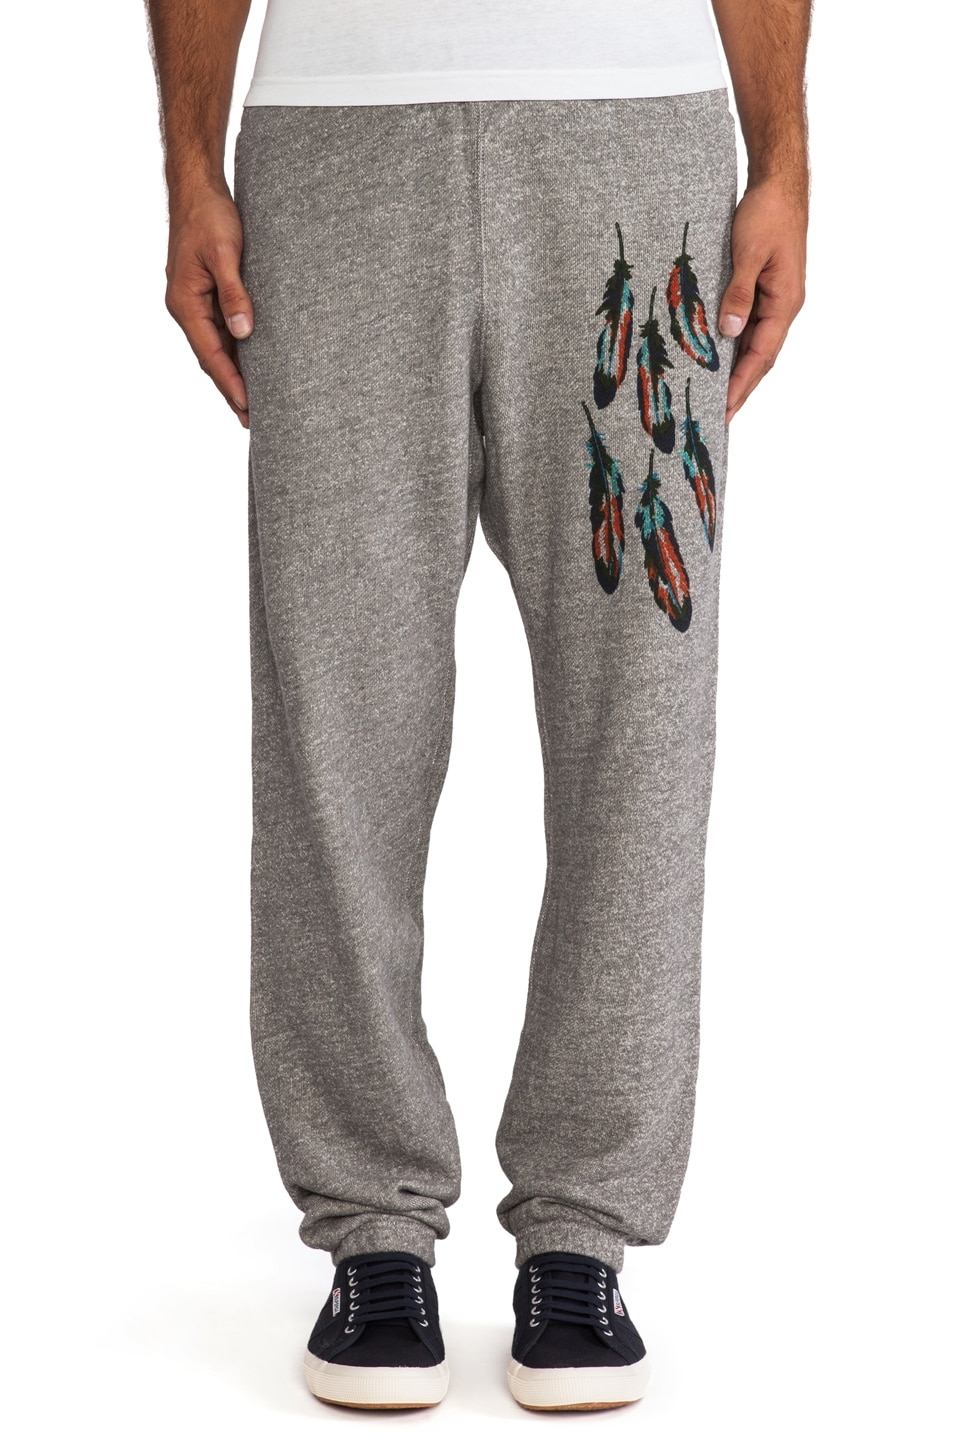 Burkman Bros. Feathers Fleece Pant in Grey Heather